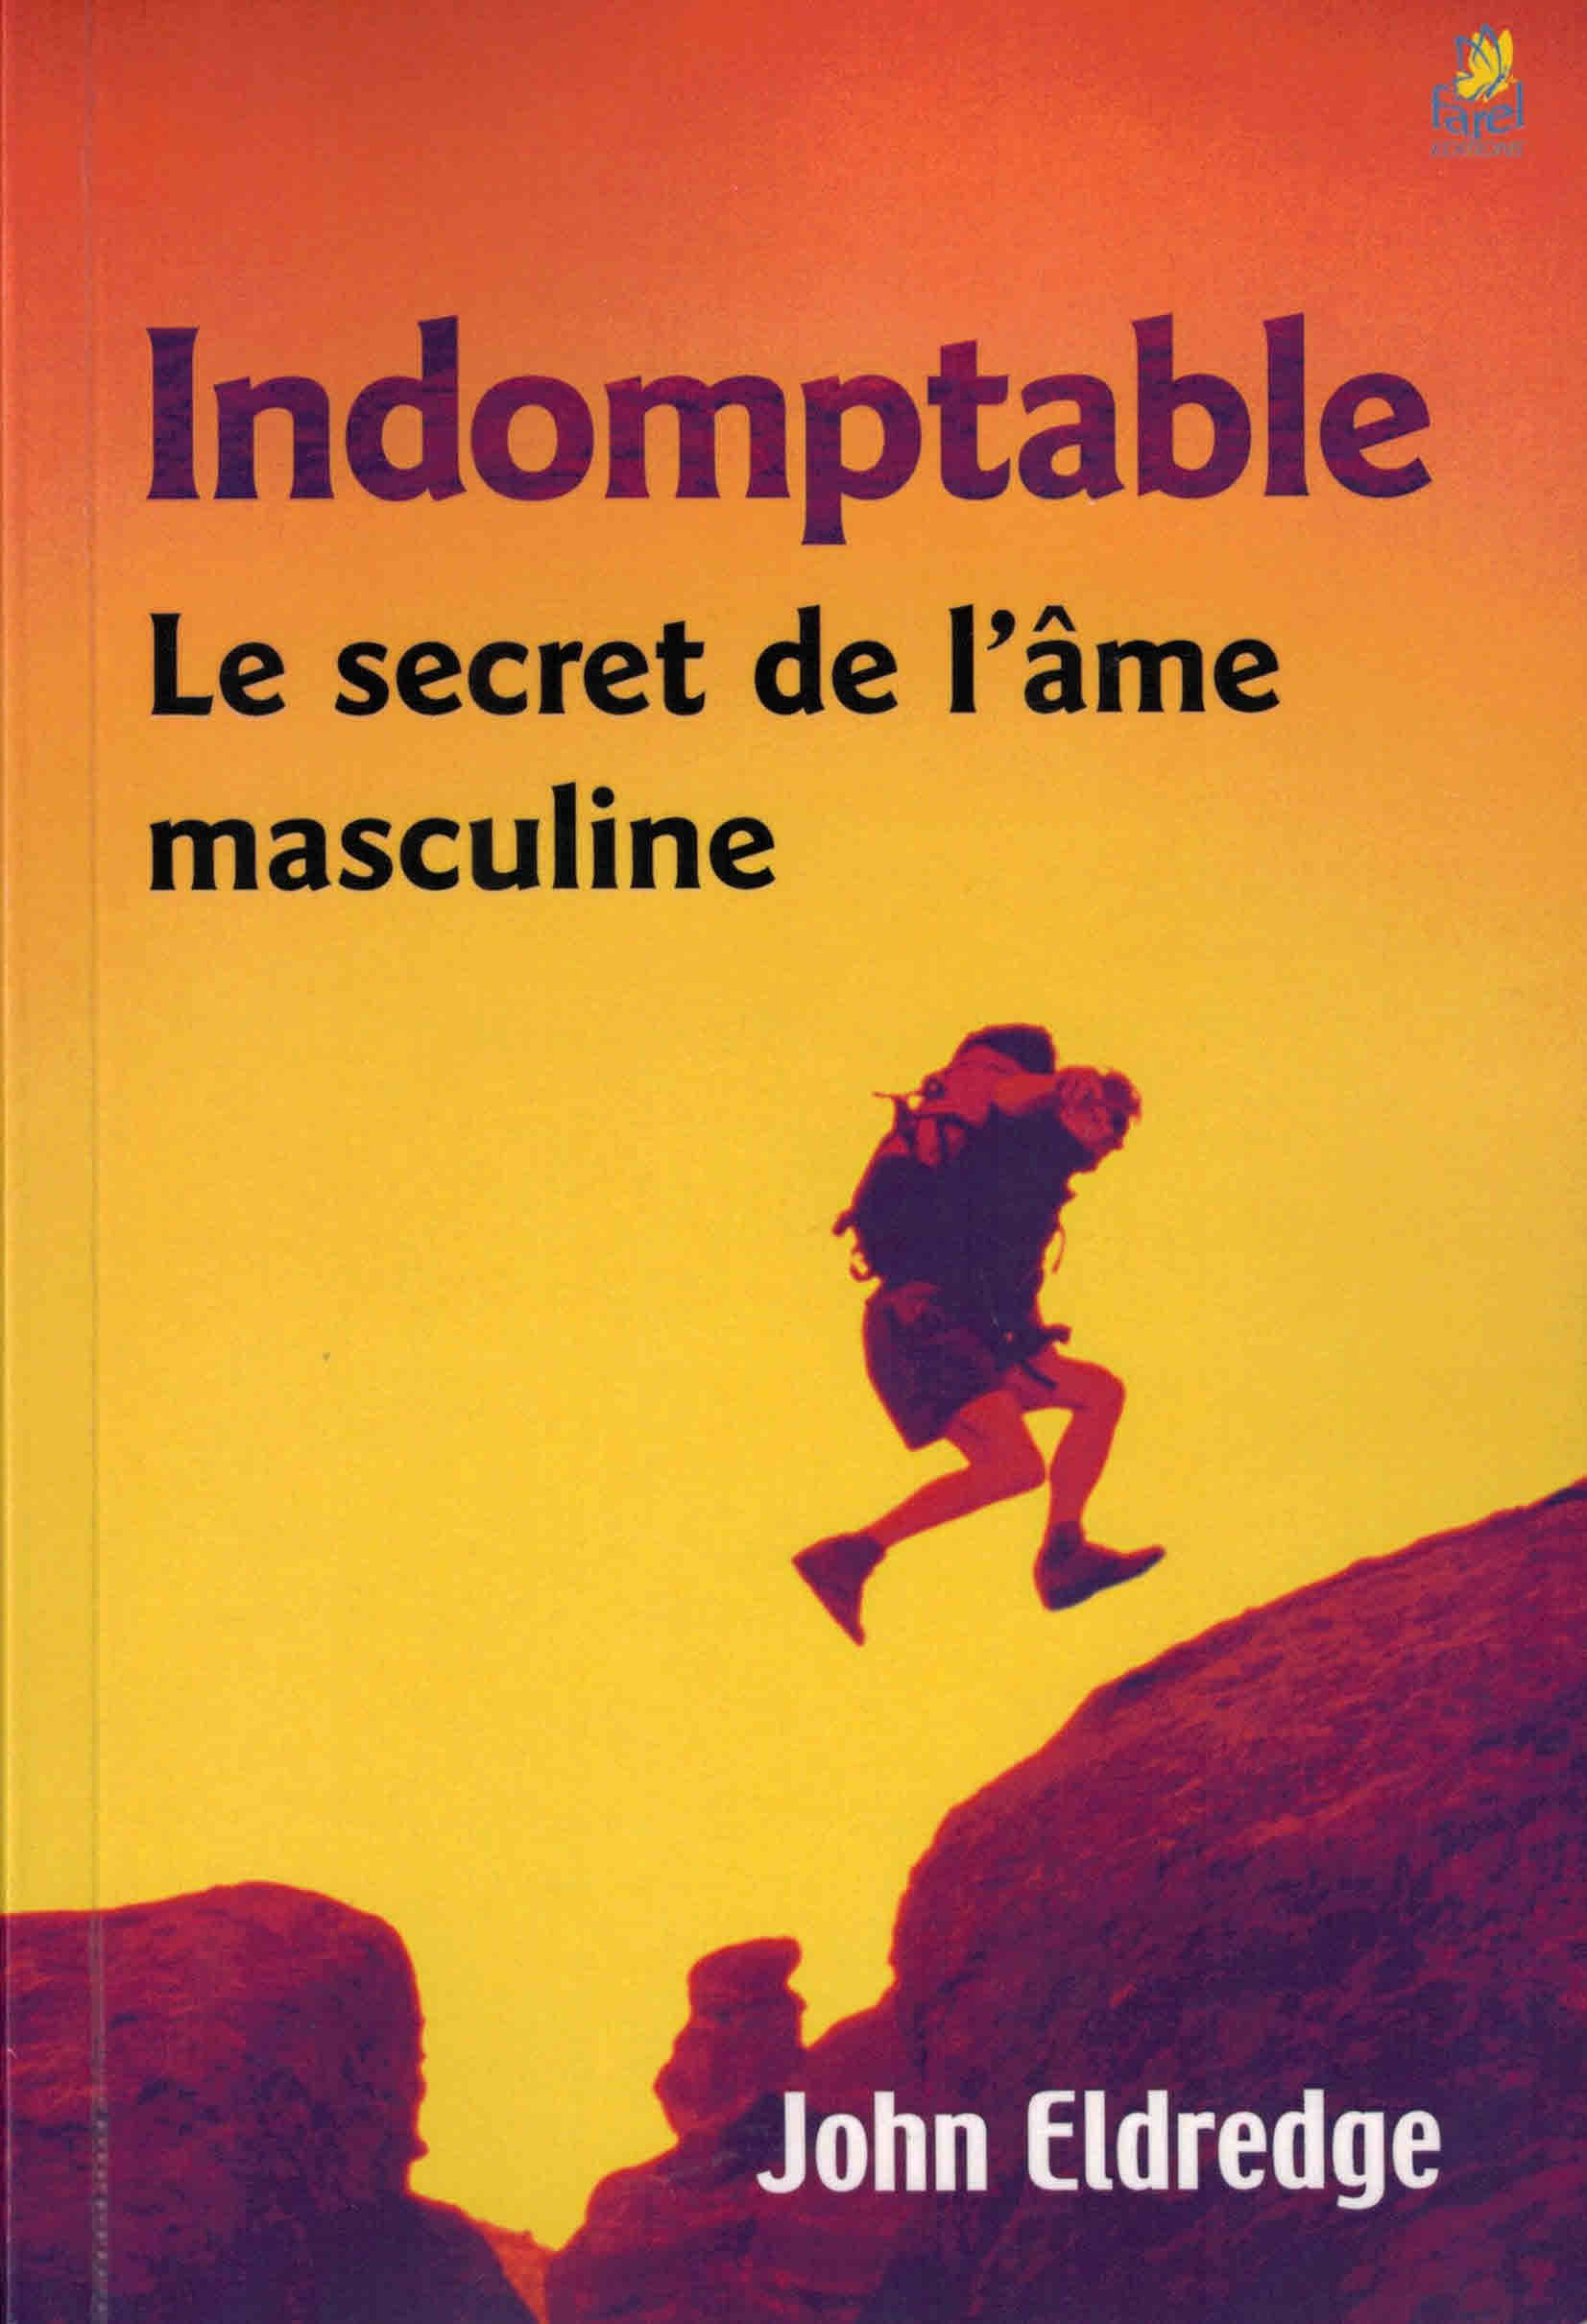 Indomptable - Le secret de l'âme masculine